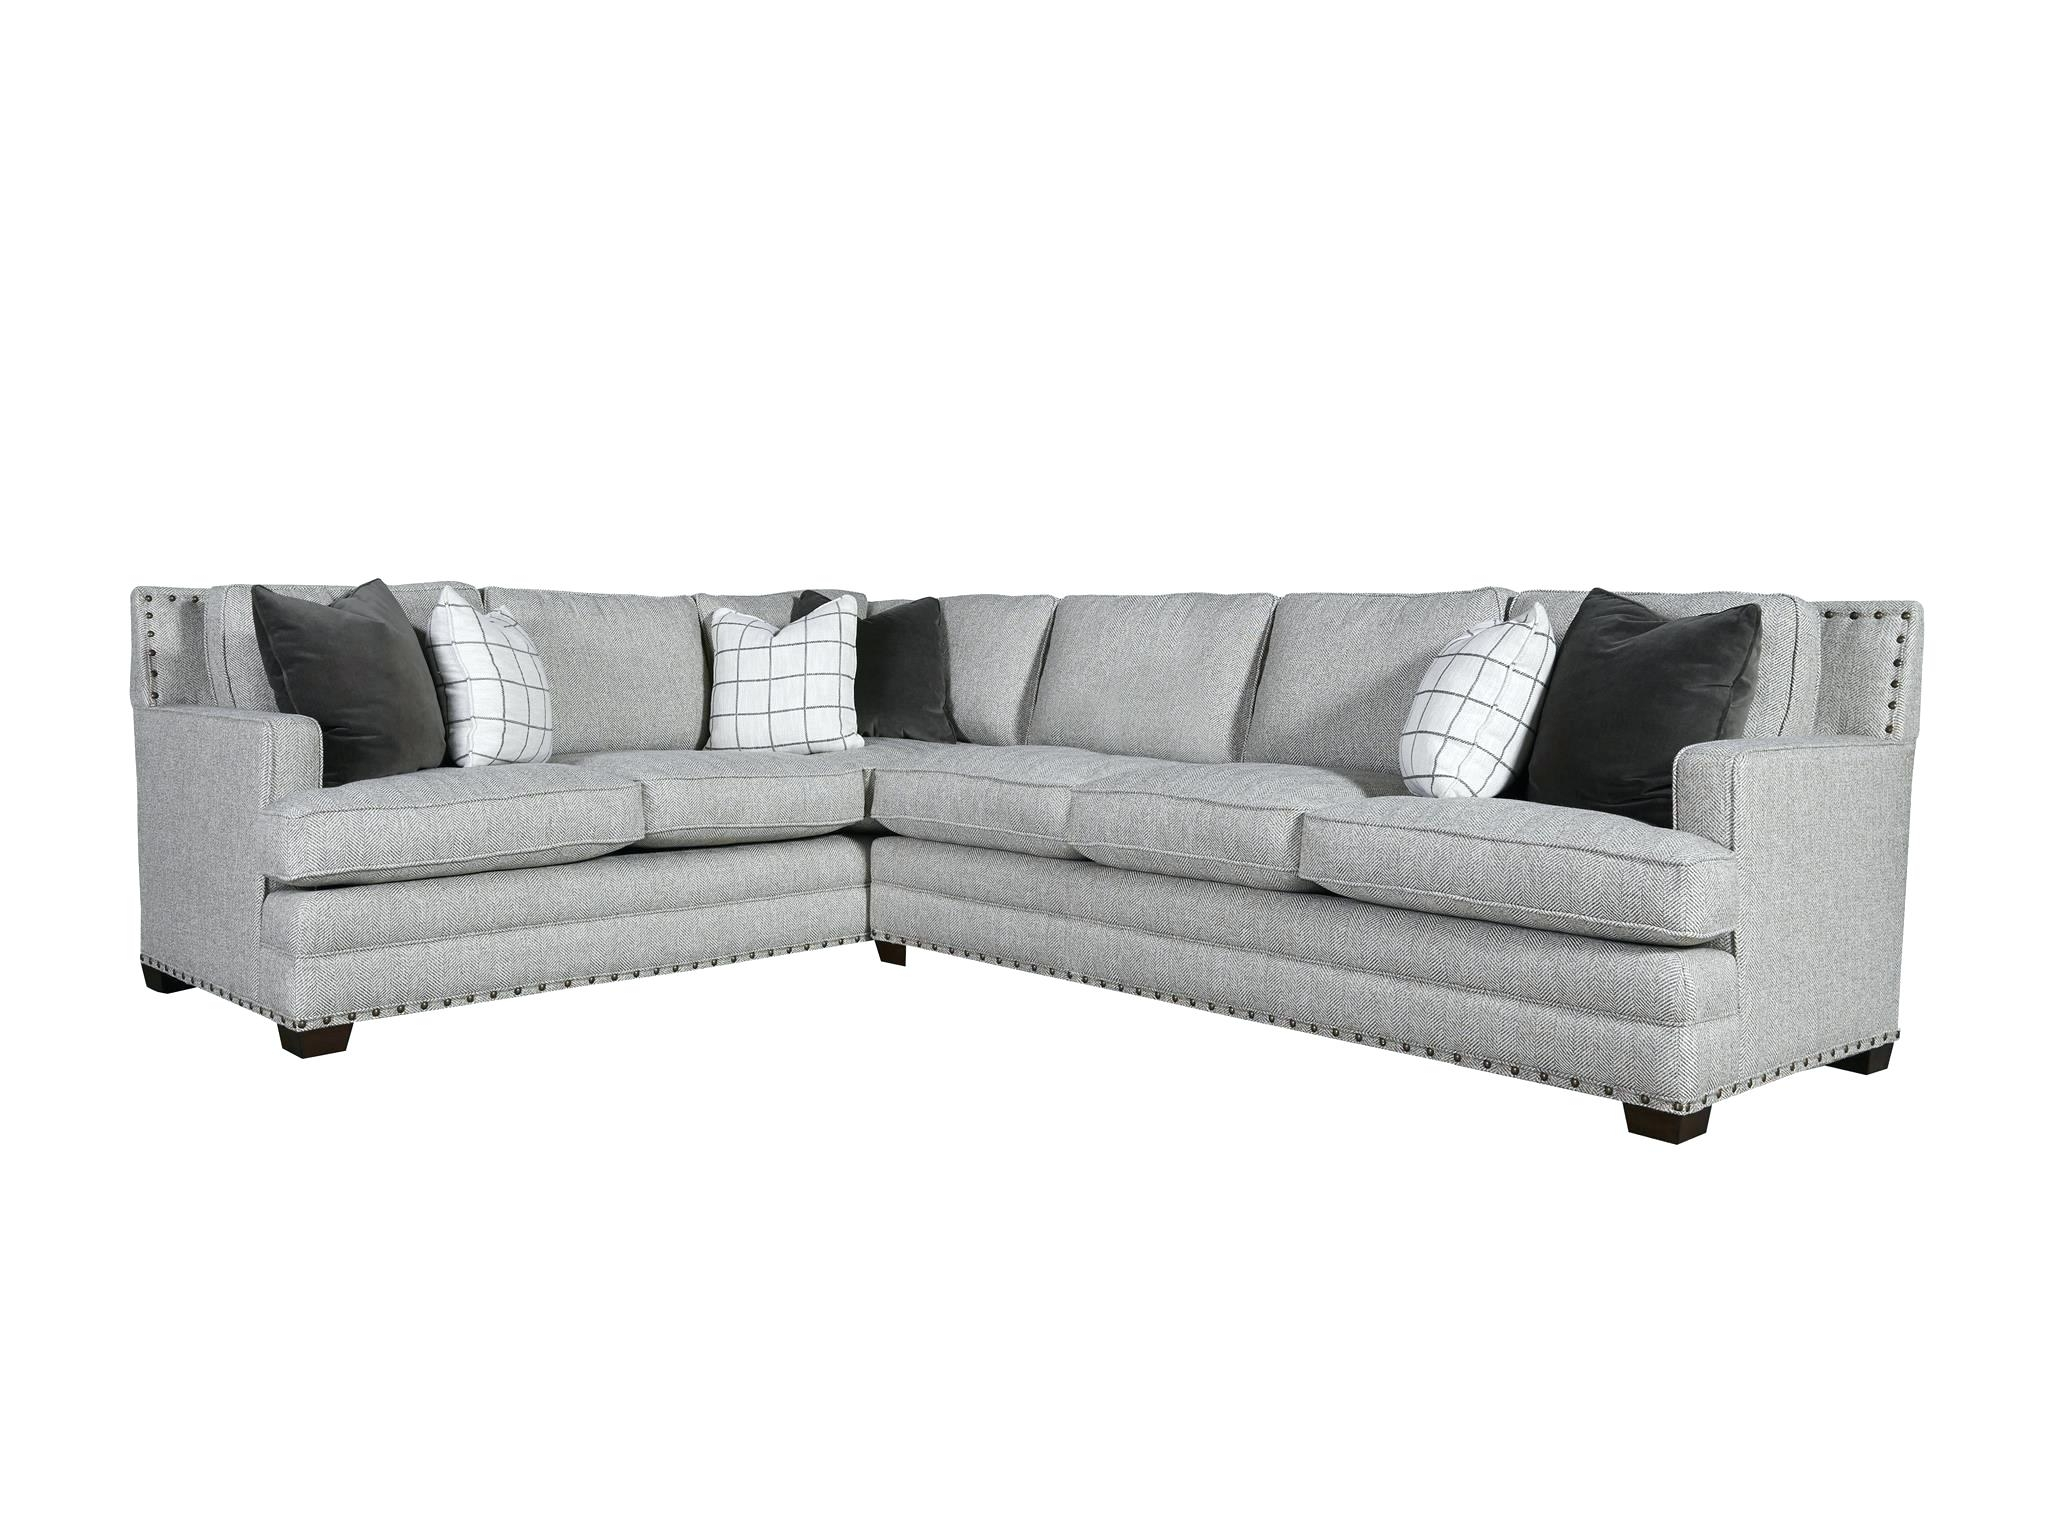 Latest High Point Nc Sectional Sofas Pertaining To Universal Furniture High Point Nc The Wow Factor A Tour Of (View 9 of 15)